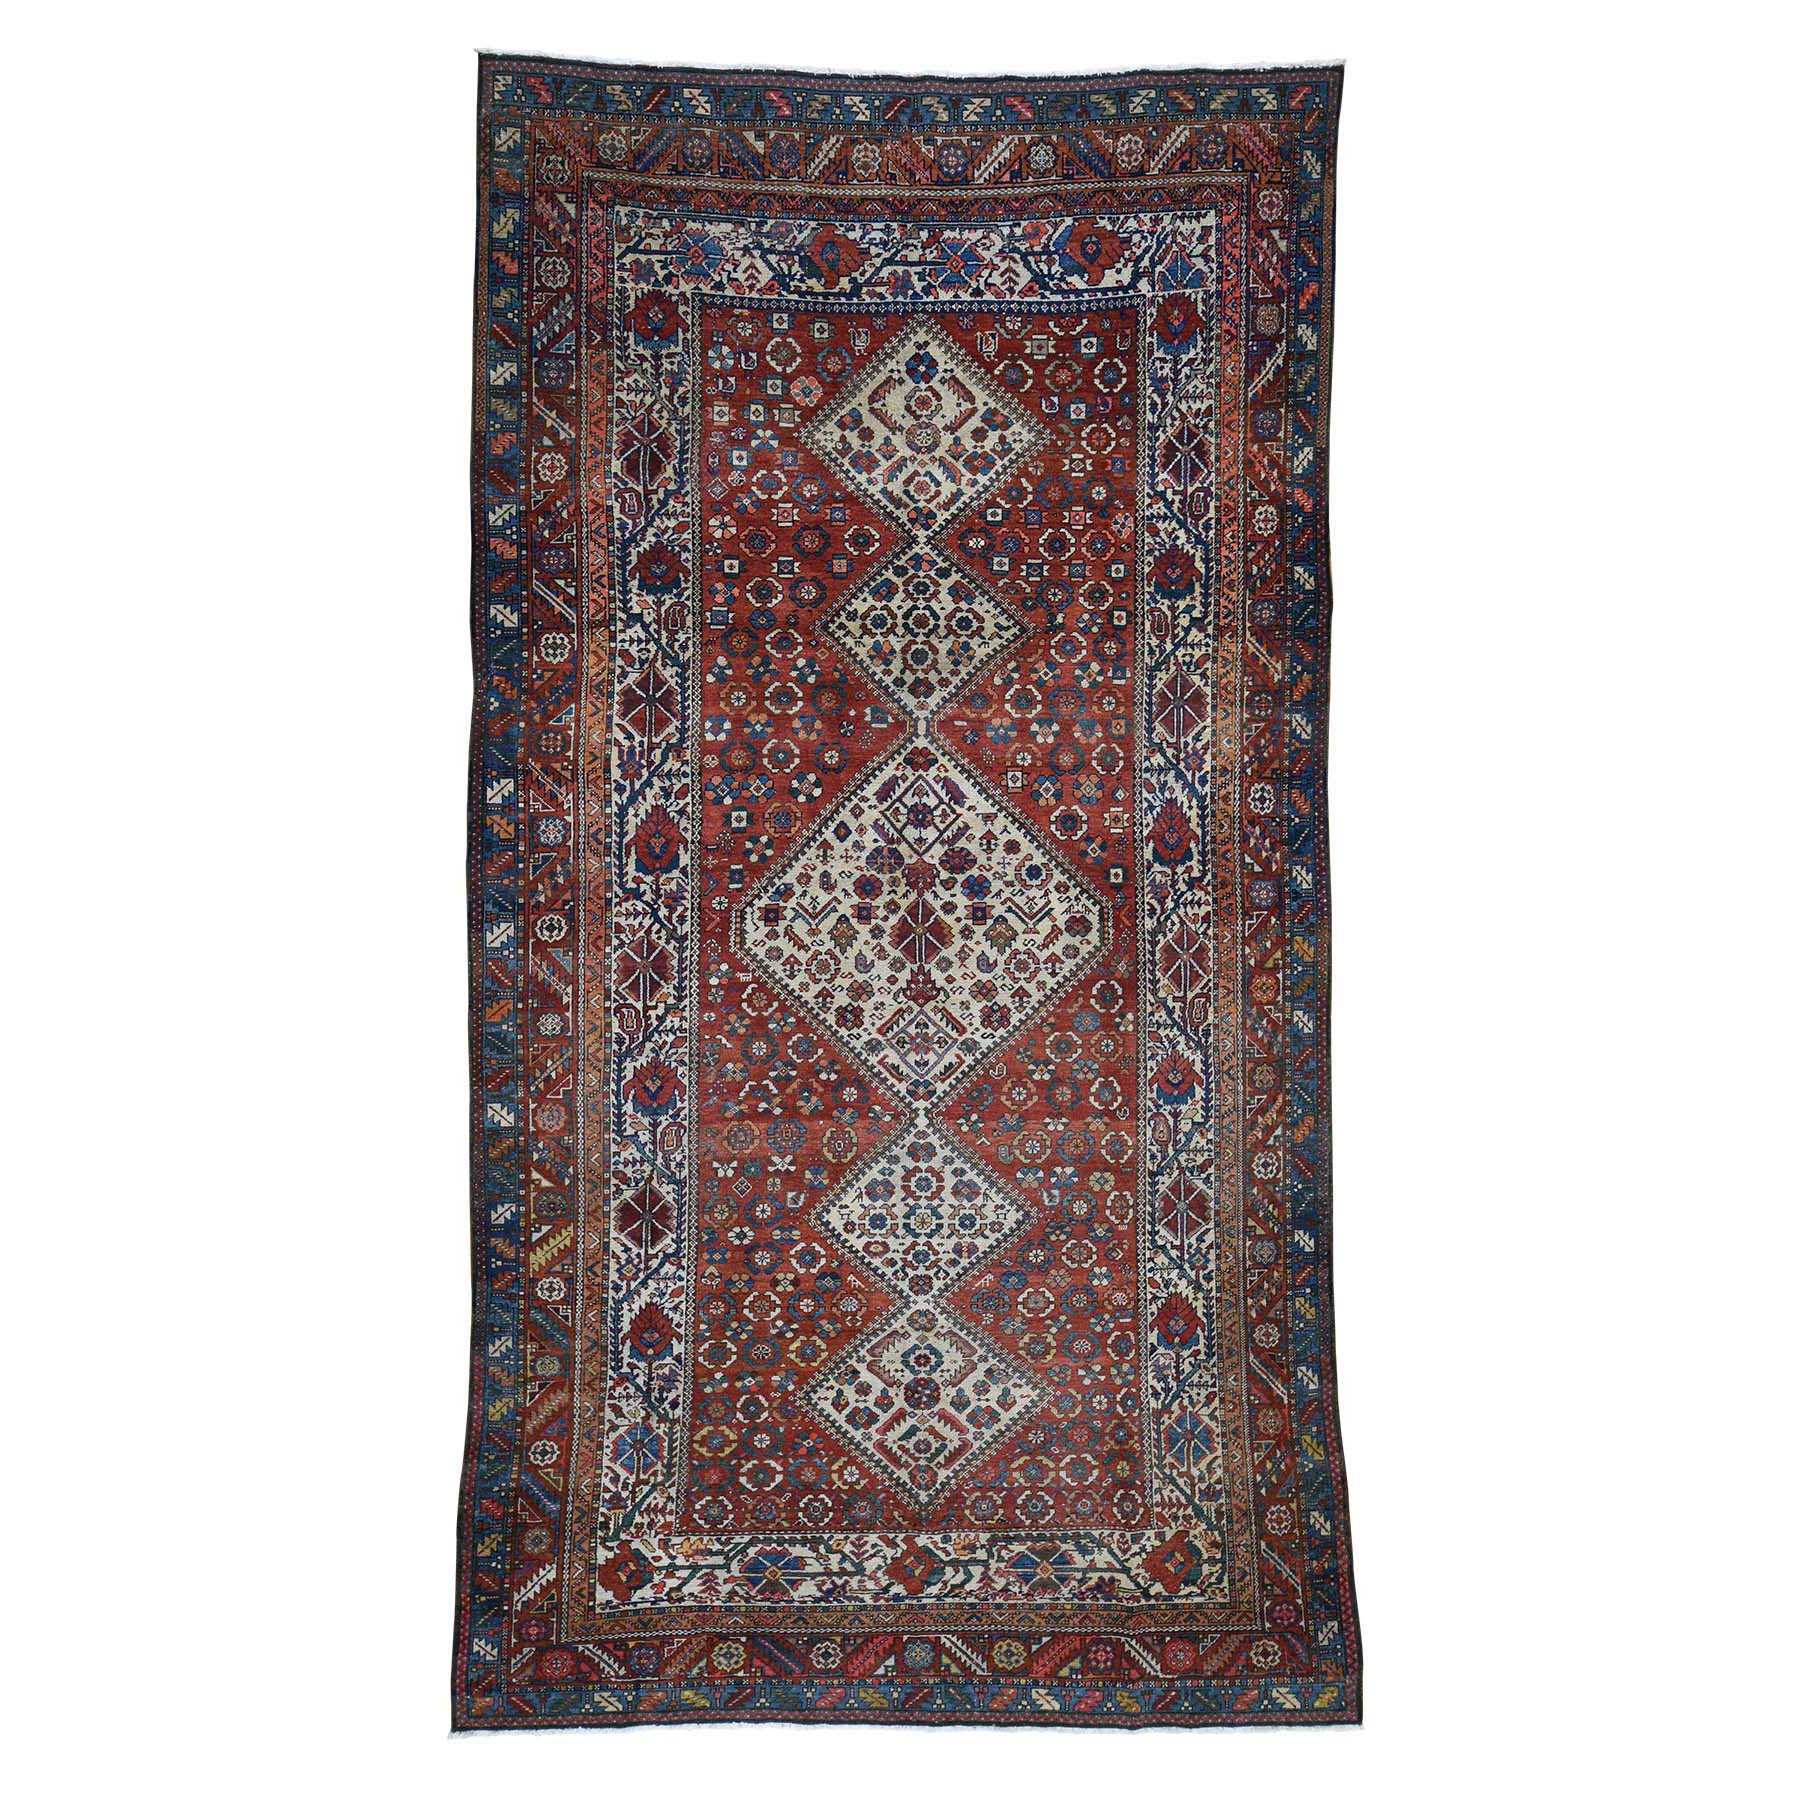 Antique Collection Hand Knotted Red Rug No: 191826